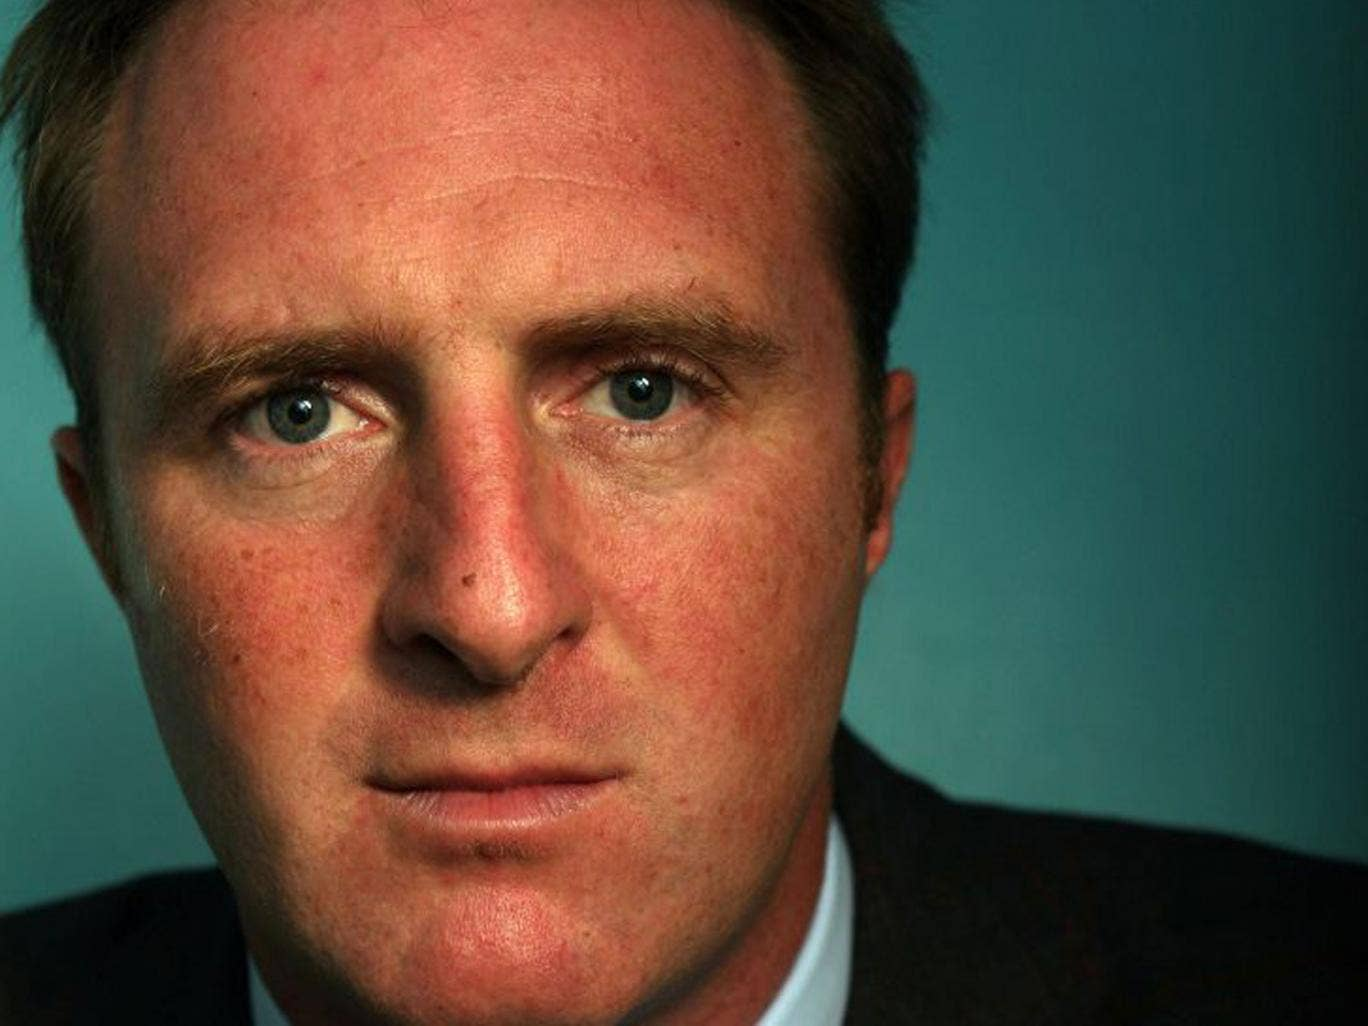 James Harding is set to be announced as the next Director of BBC News